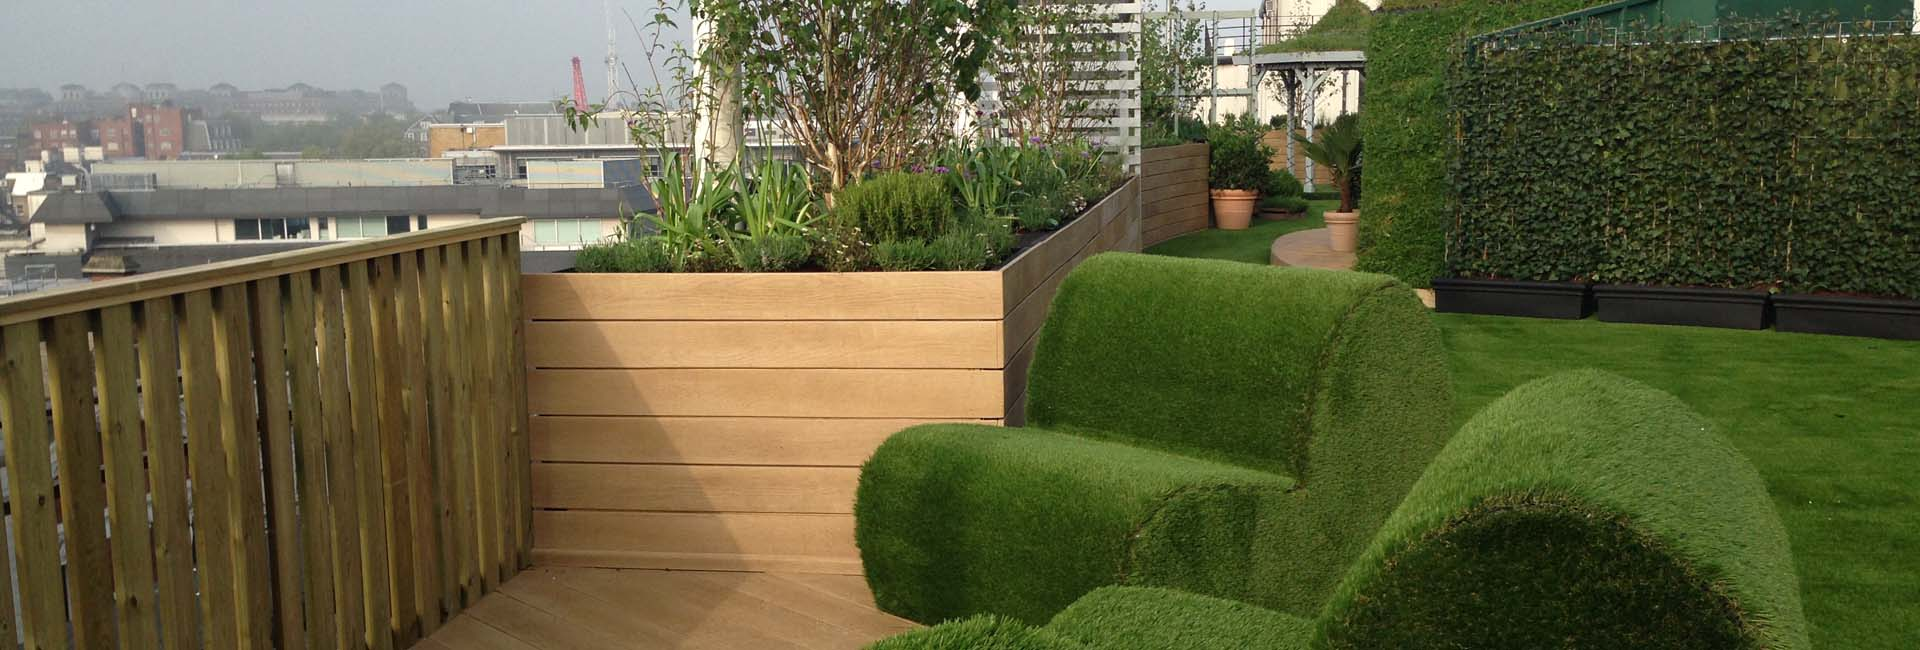 Oxford Street Roof Garden